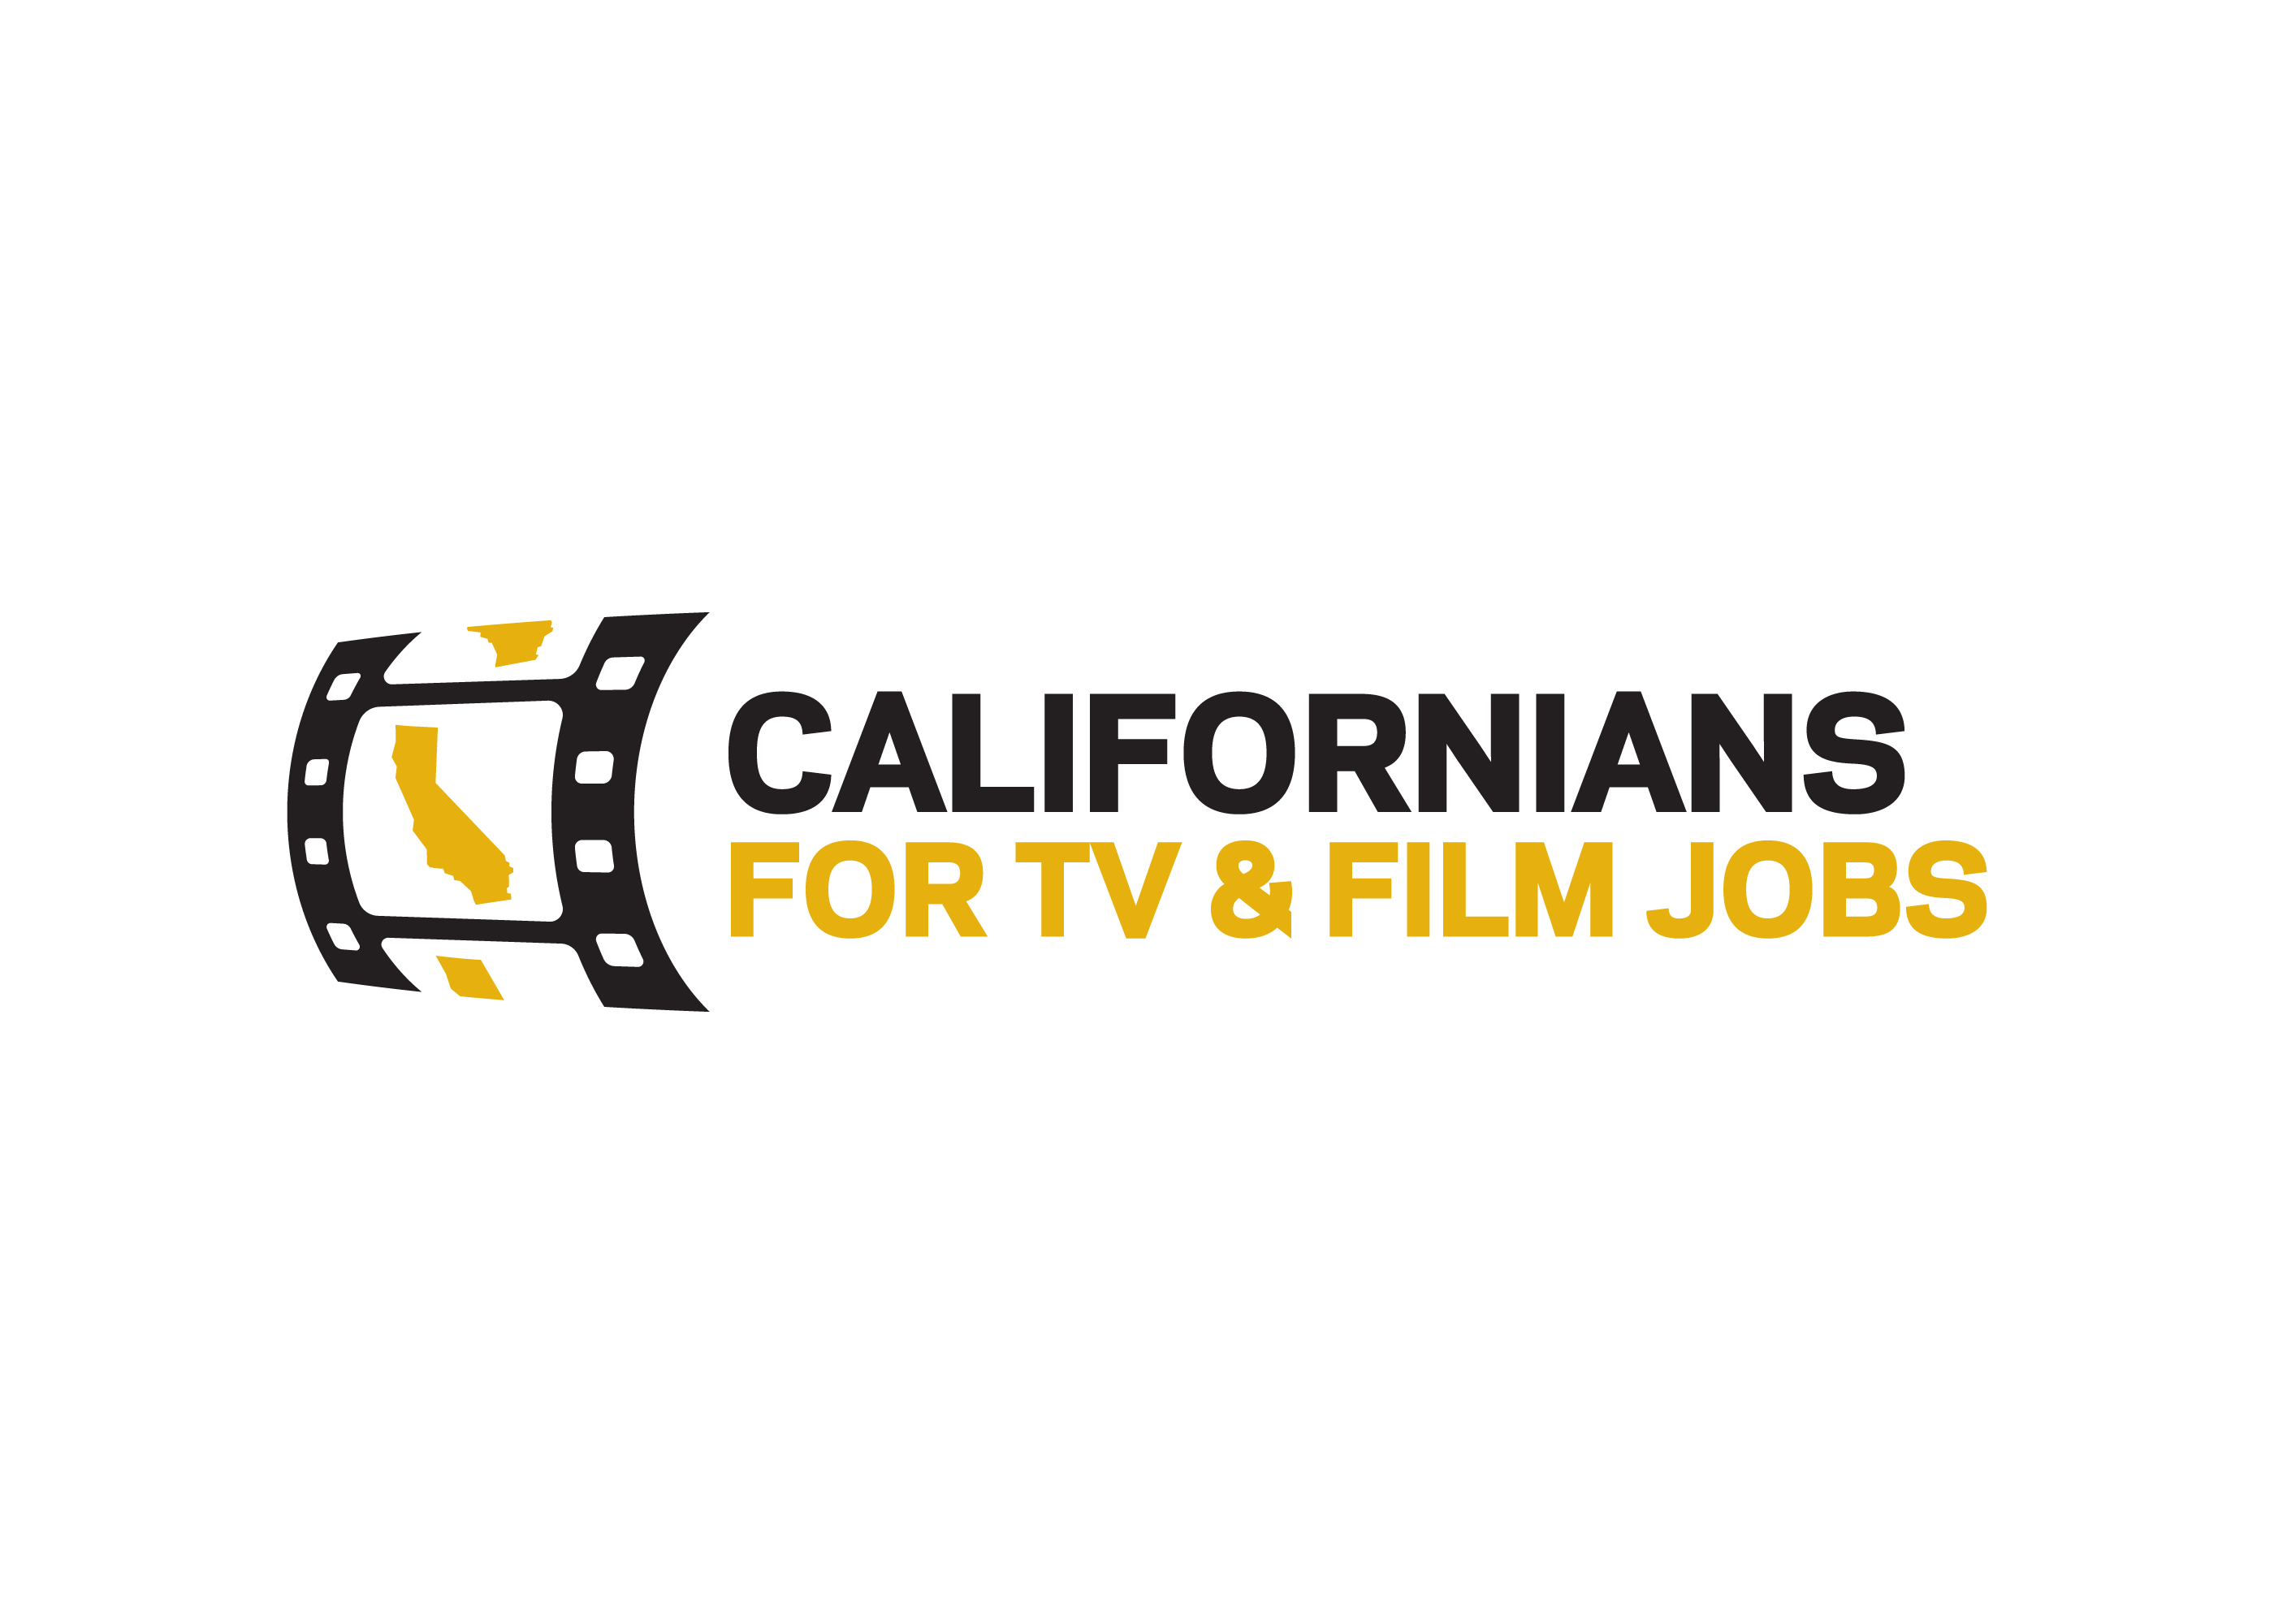 Californians for TV & Film Jobs Campaign Logo